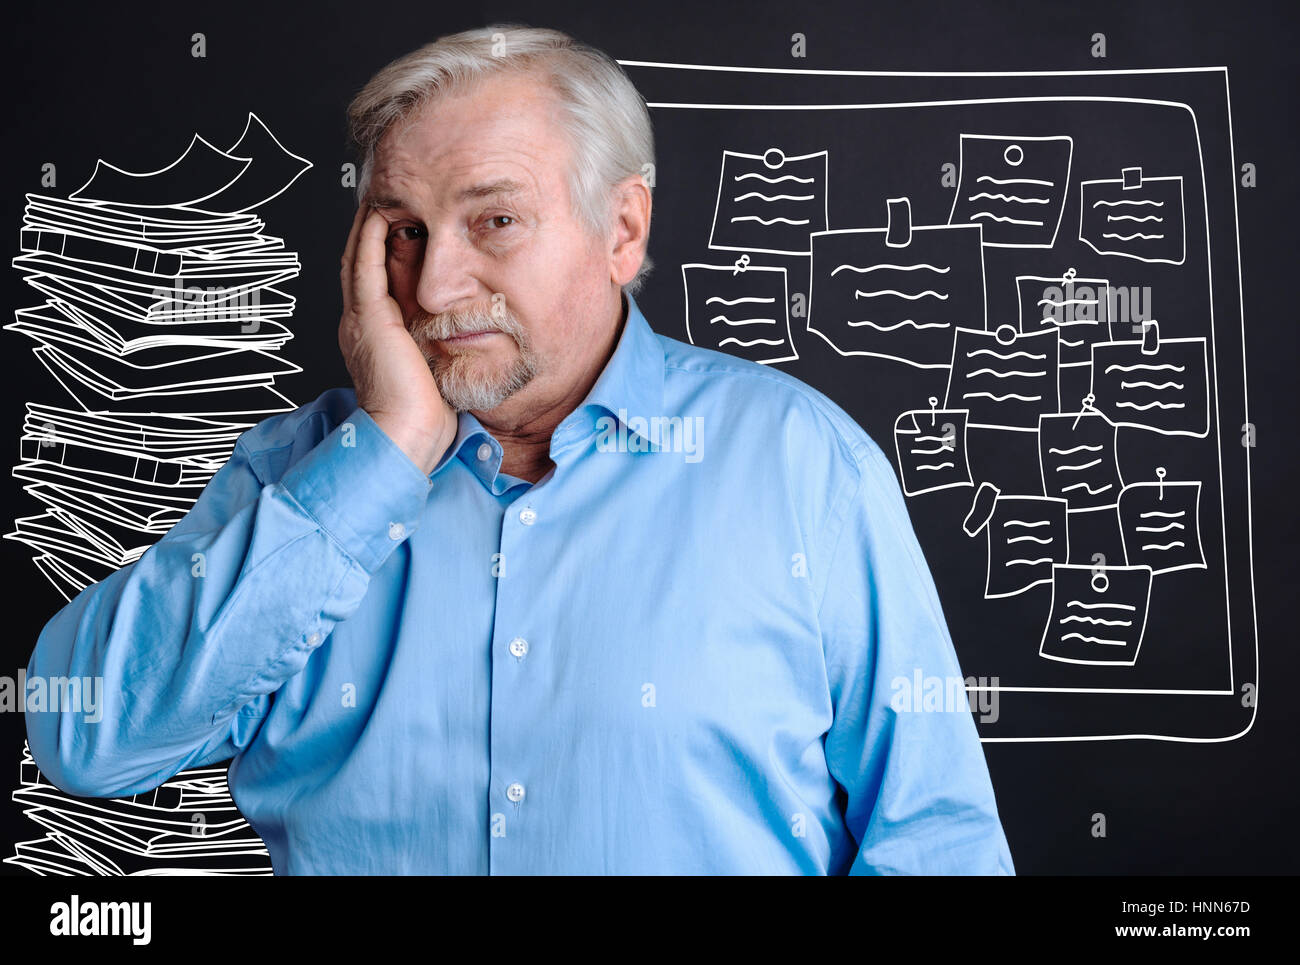 Unhappy stressful man having a heavy workload - Stock Image